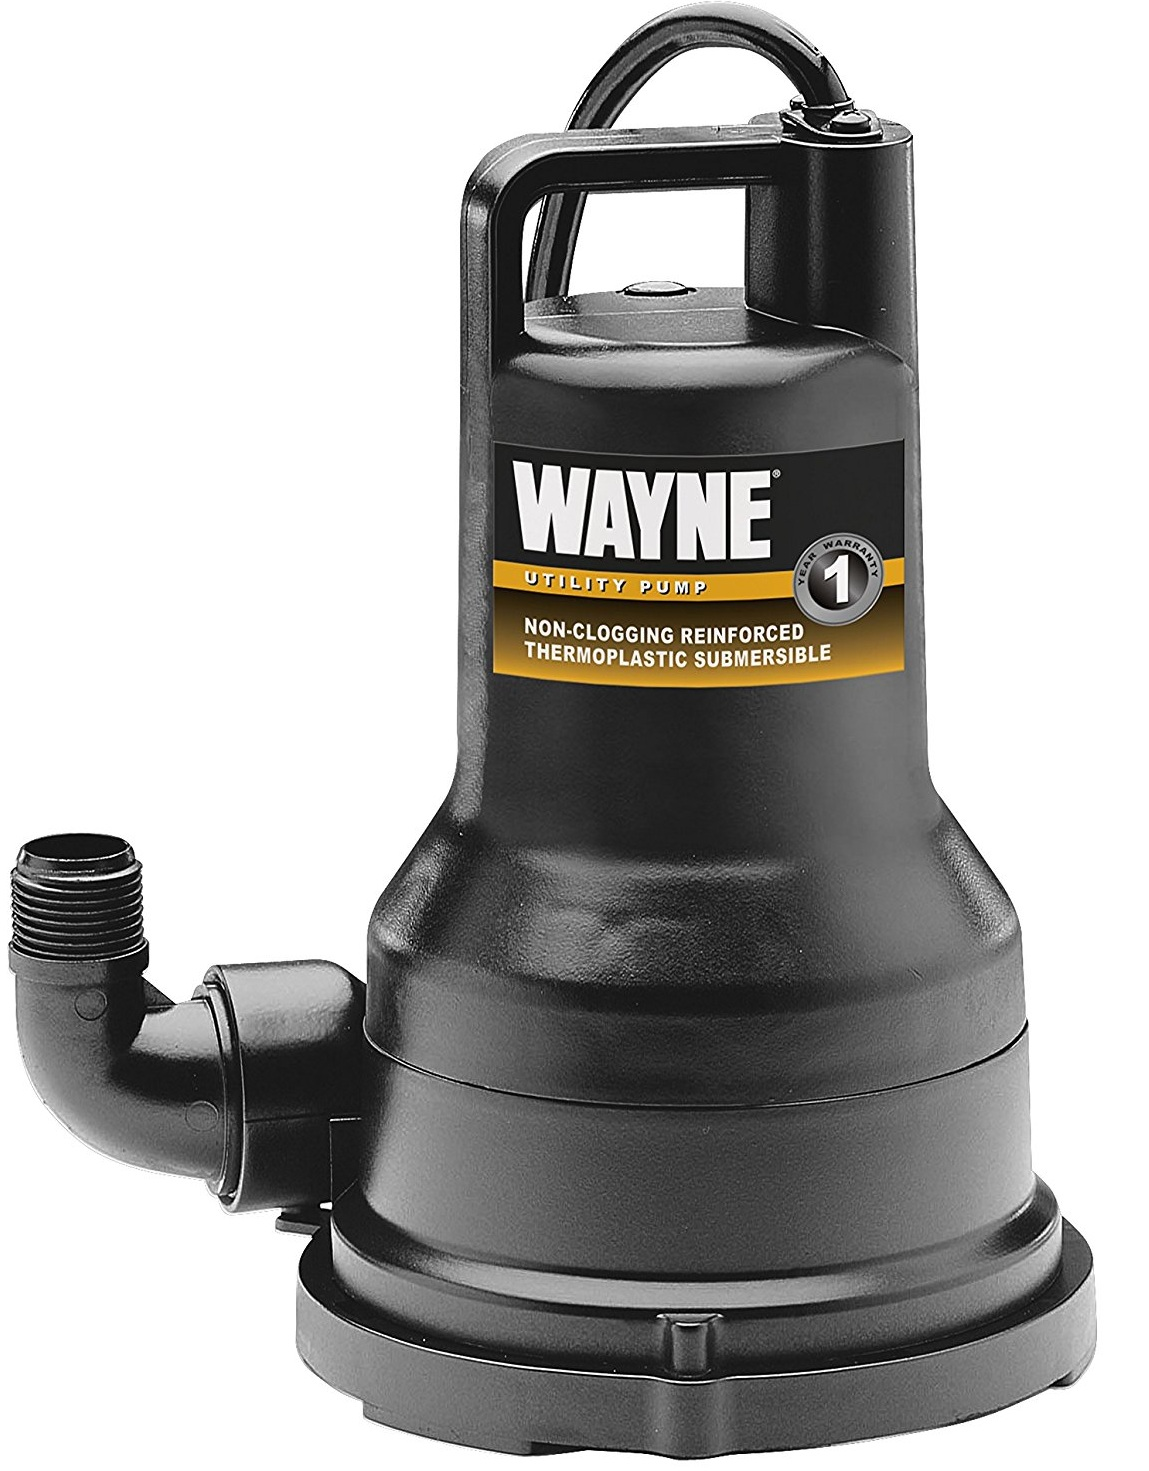 Wayne Water Systems VIP50 Sump Pump Reviews